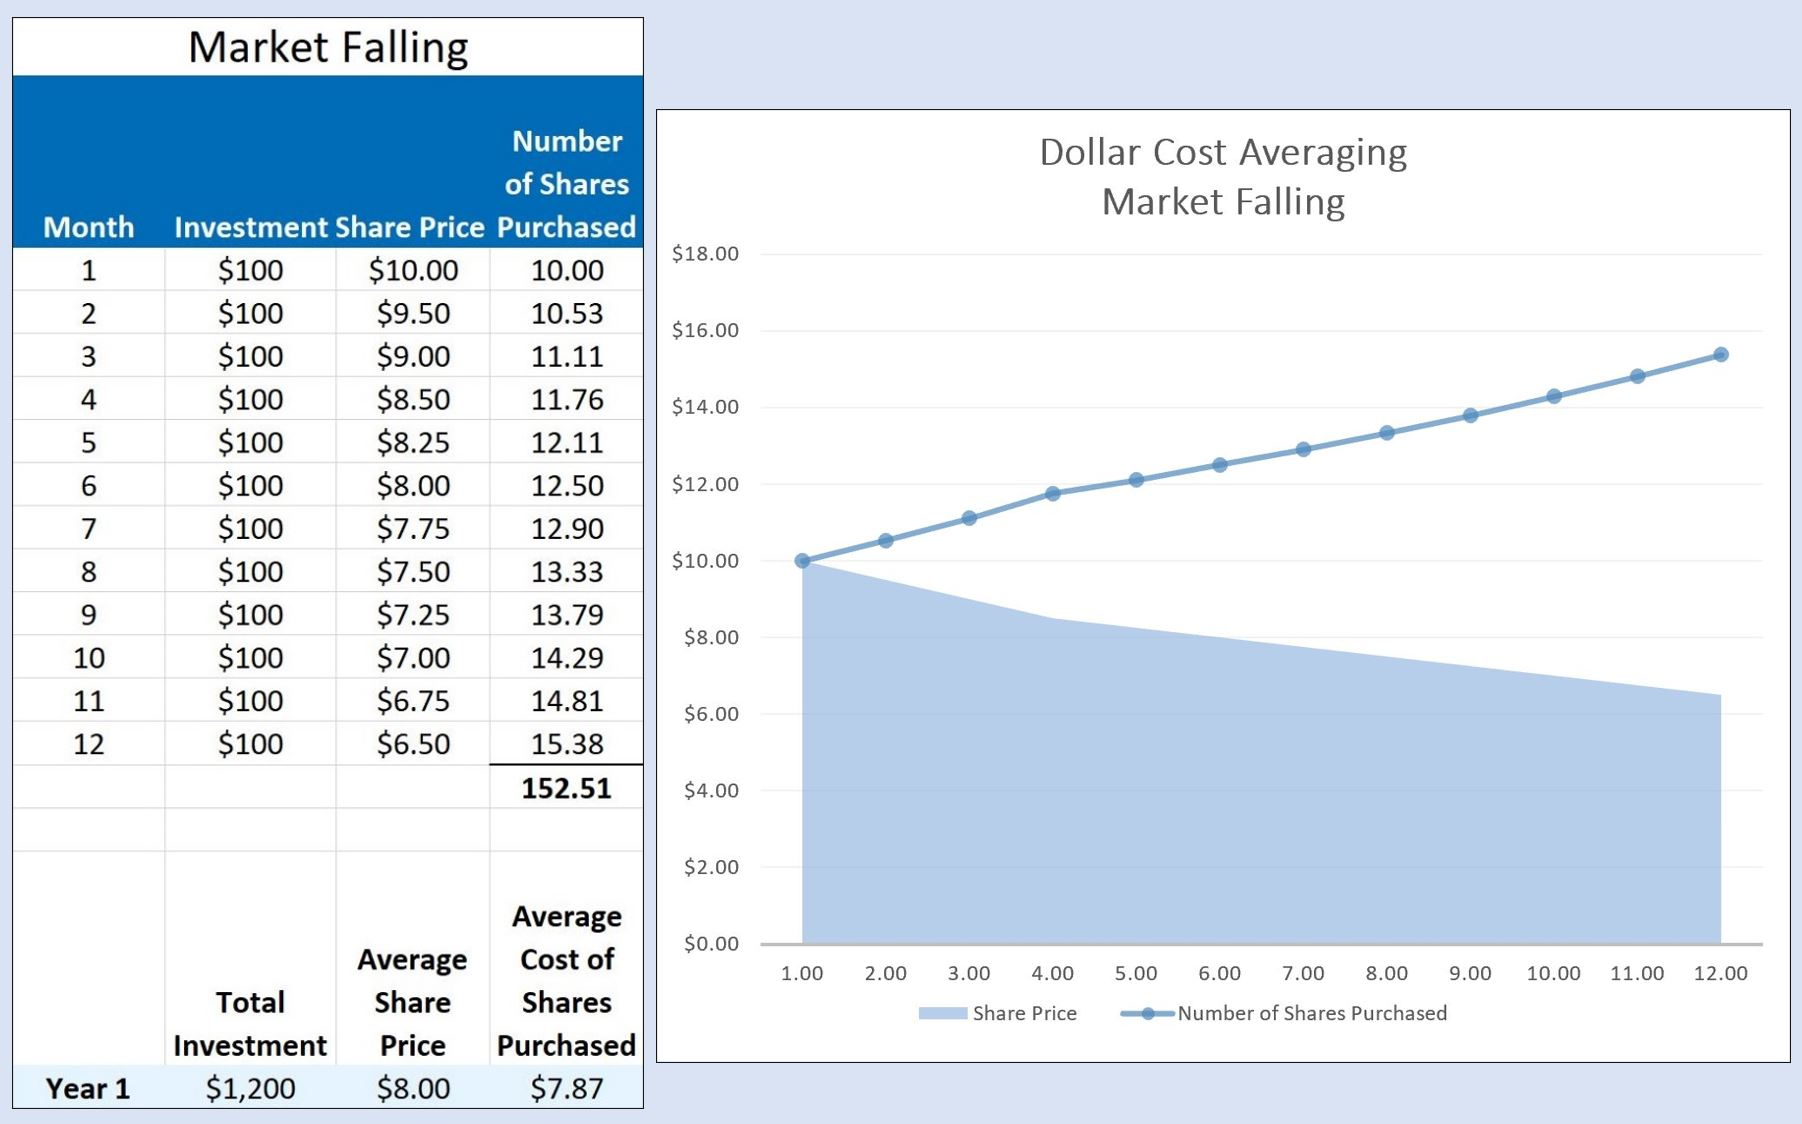 Table and chart illustrating impact of dollar-cost averaging. When the market is falling more units/shares can be purchased at a lower price.